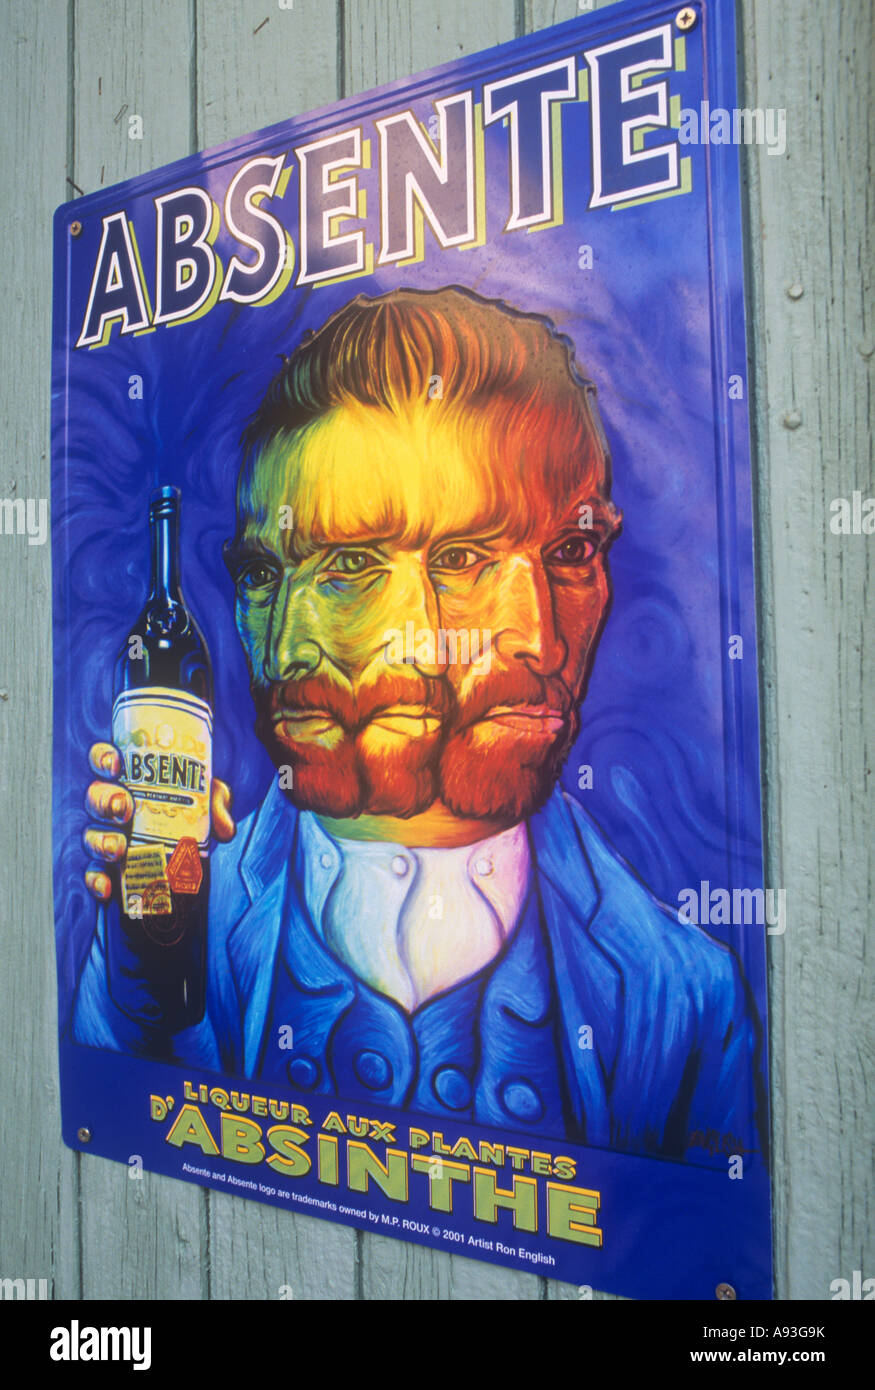 Advertising poster in France for Absinthe alcoholic drink with its famous drinker, Van Gogh - Stock Image